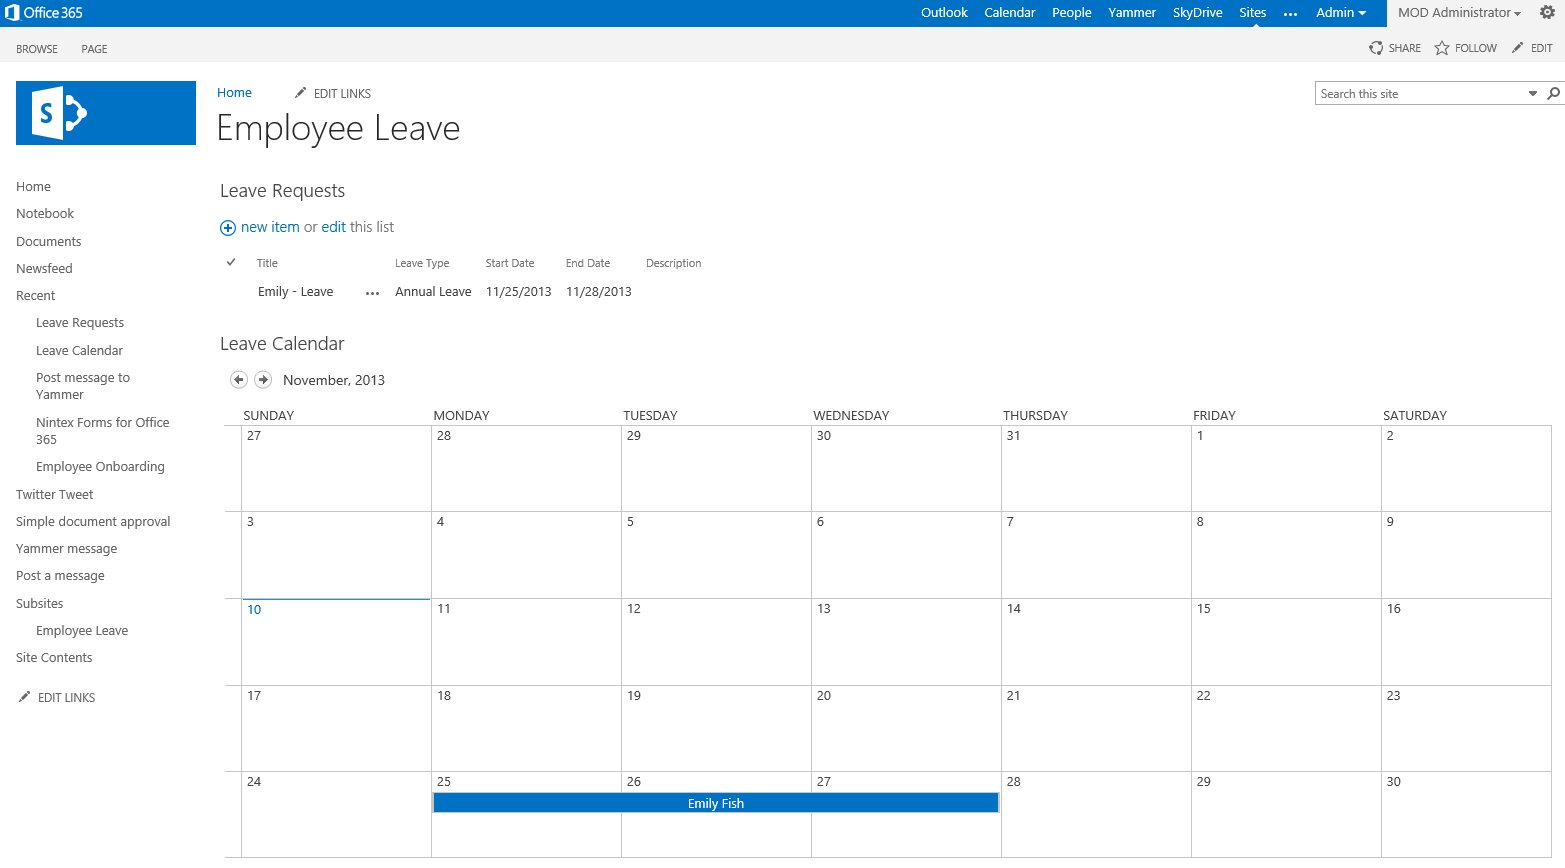 employee_leave_calendar.png